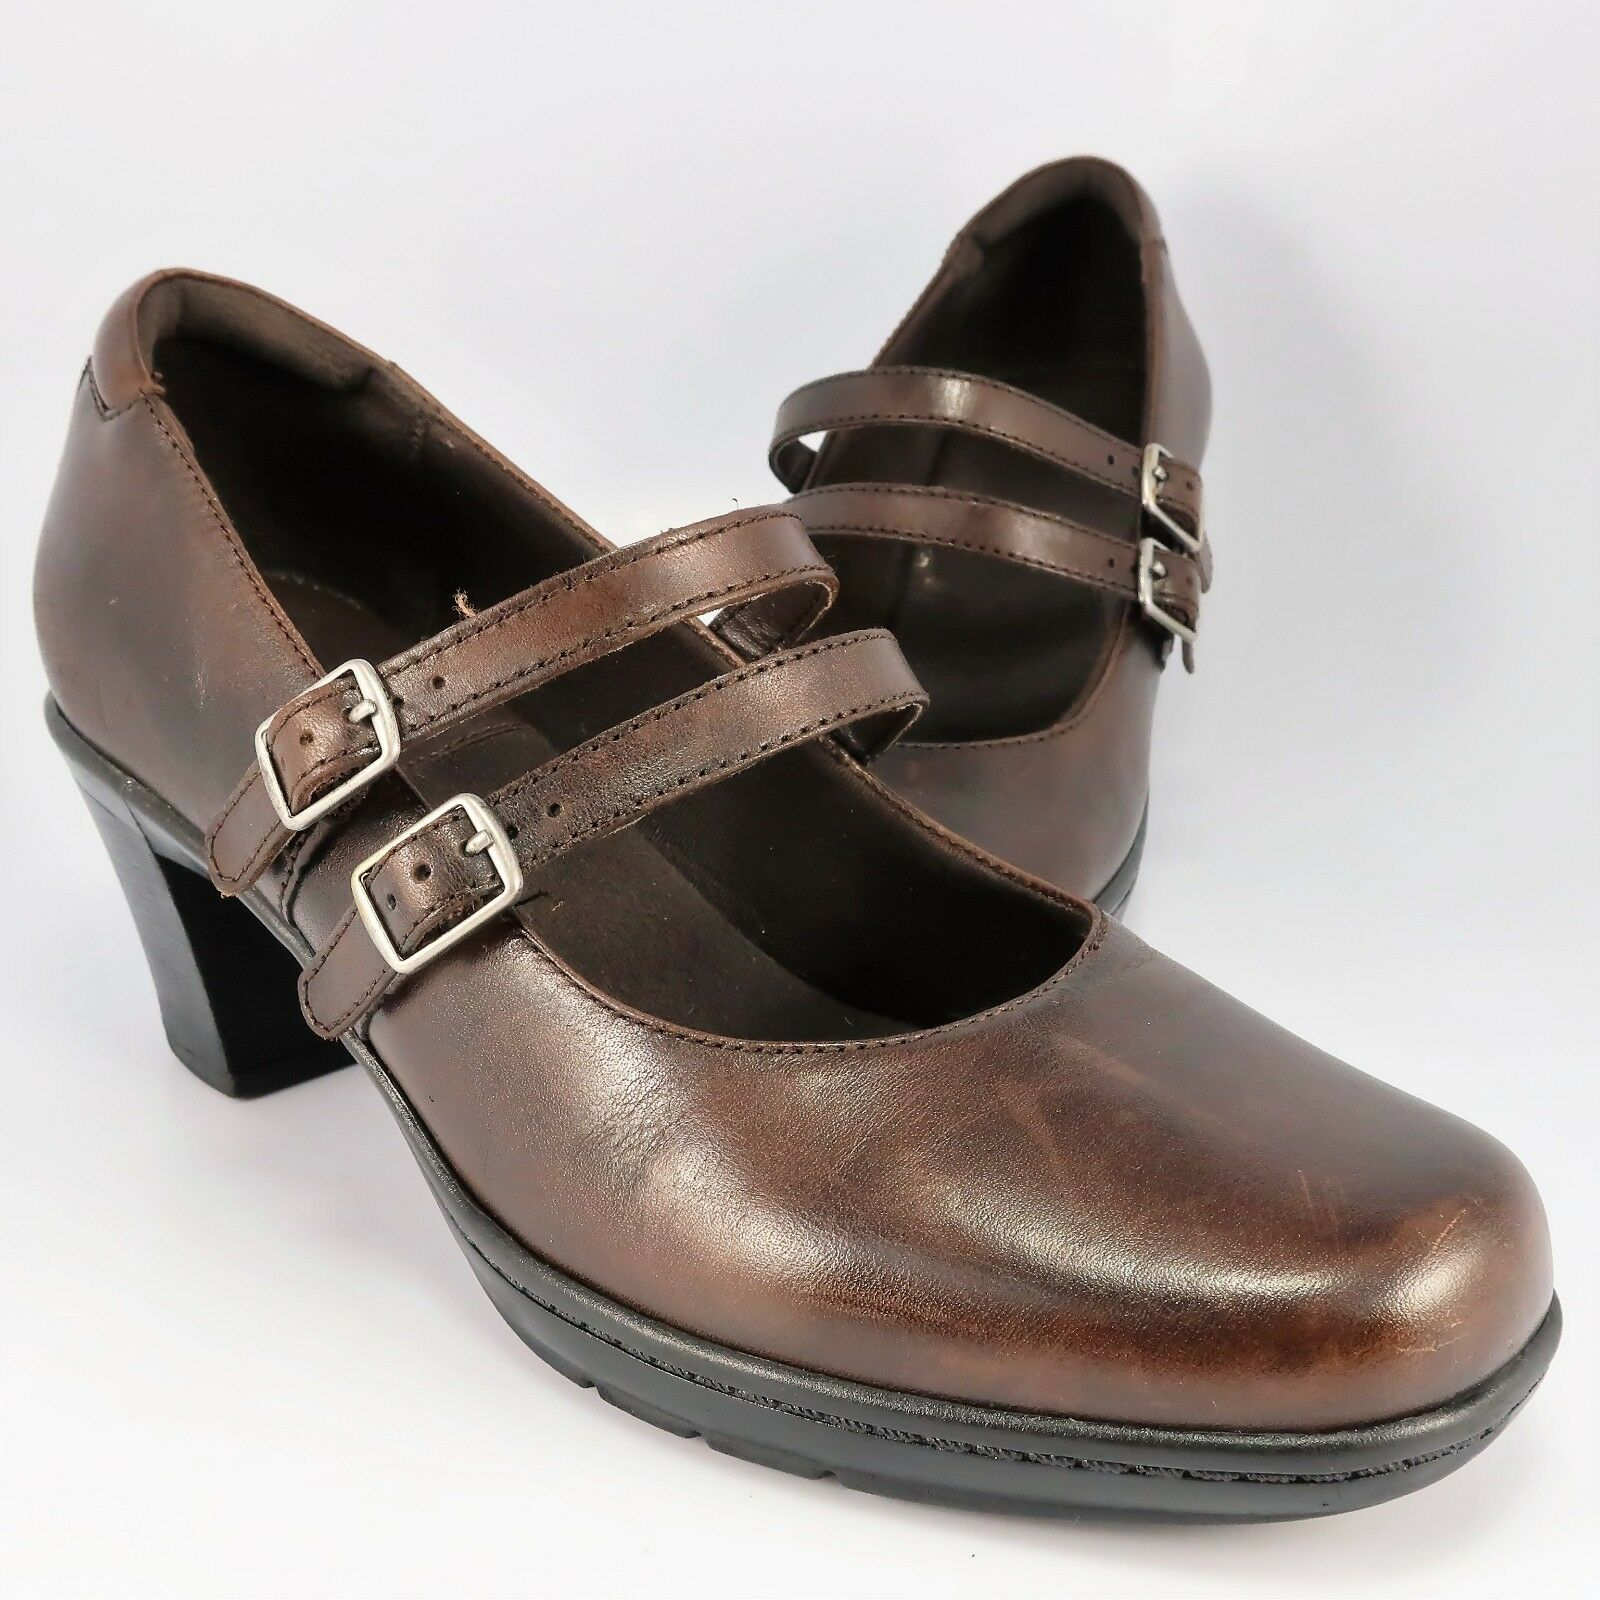 Clarks 2-Strap Mary Jane Pumps Womens Size 7.5M Brown Leather Slip-On Loafer